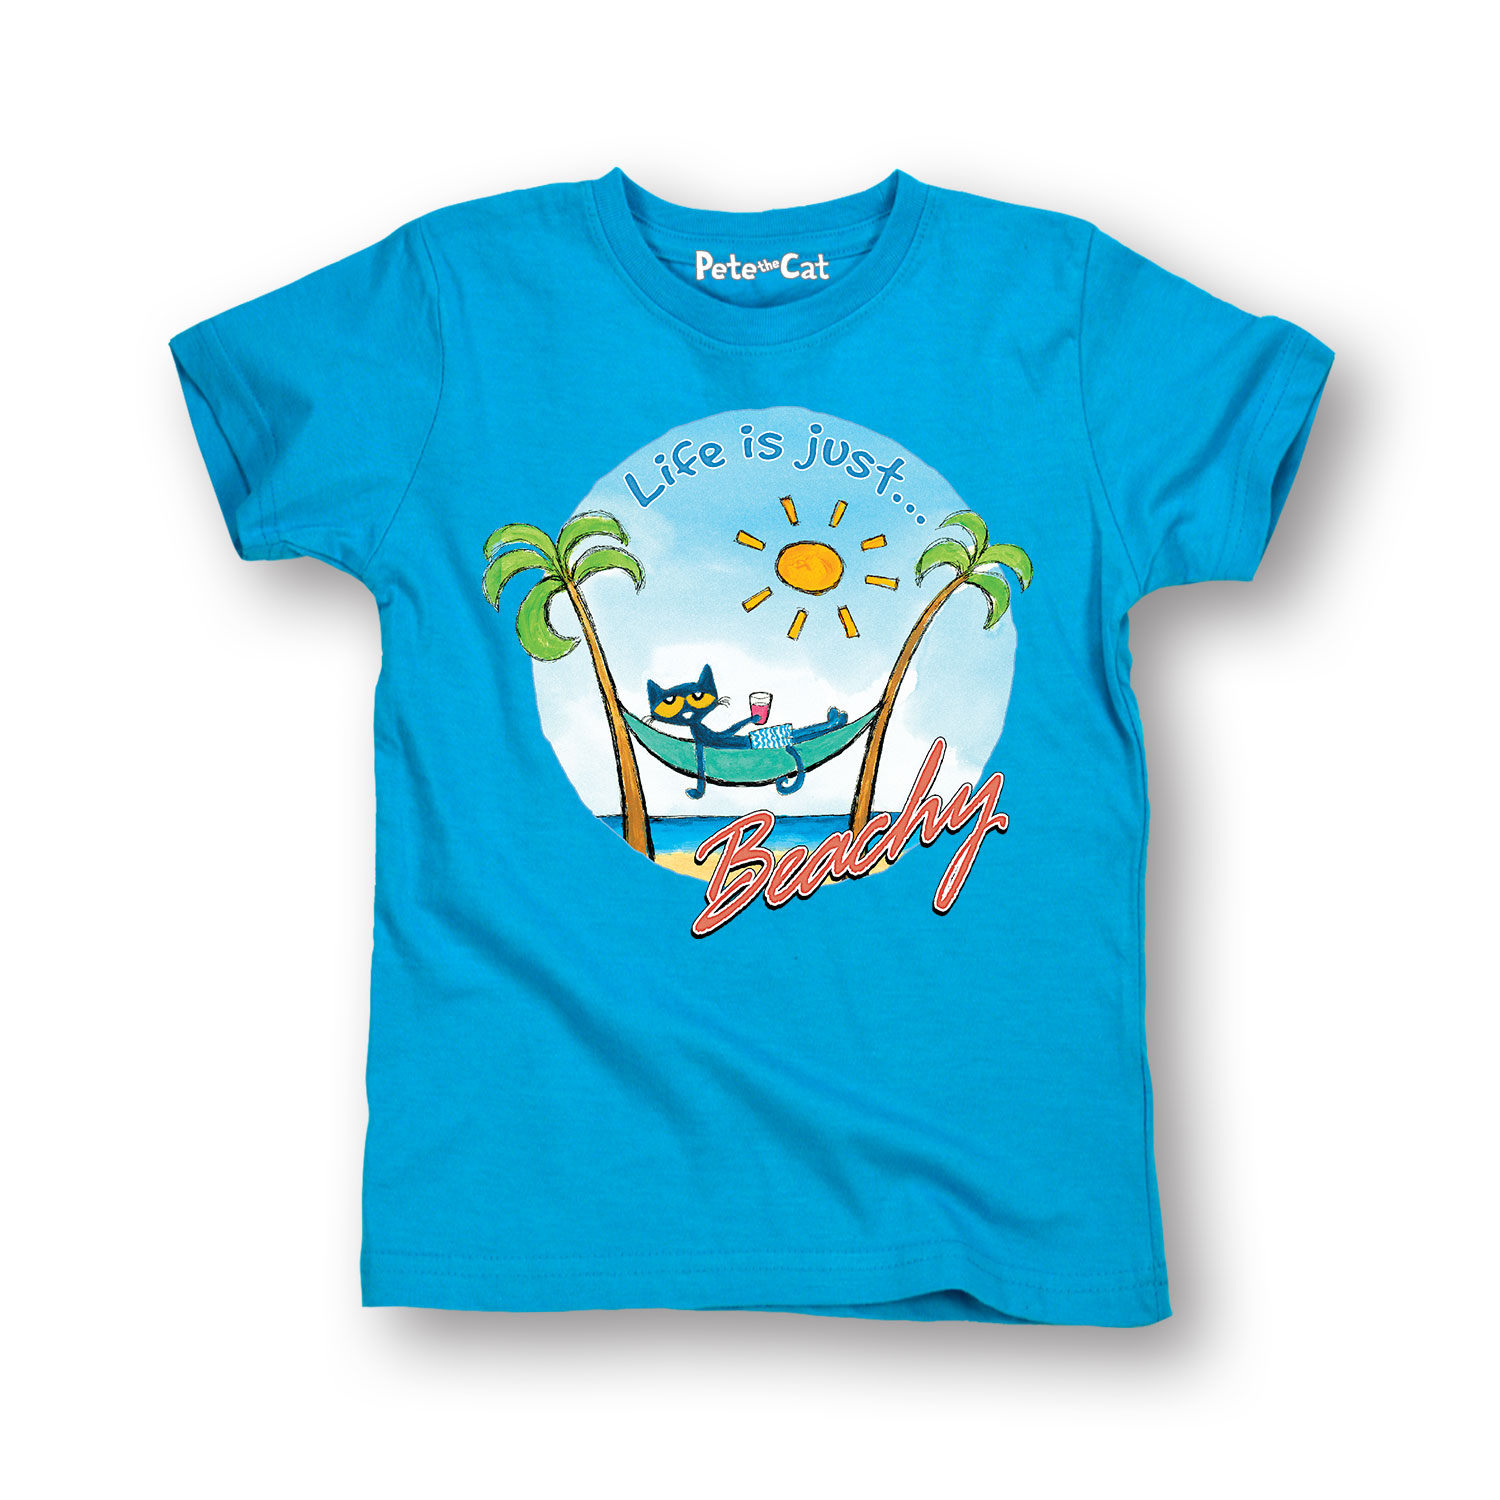 Pete The Cat Life Is Just Beachy - Toddler Short Sleeve Tee